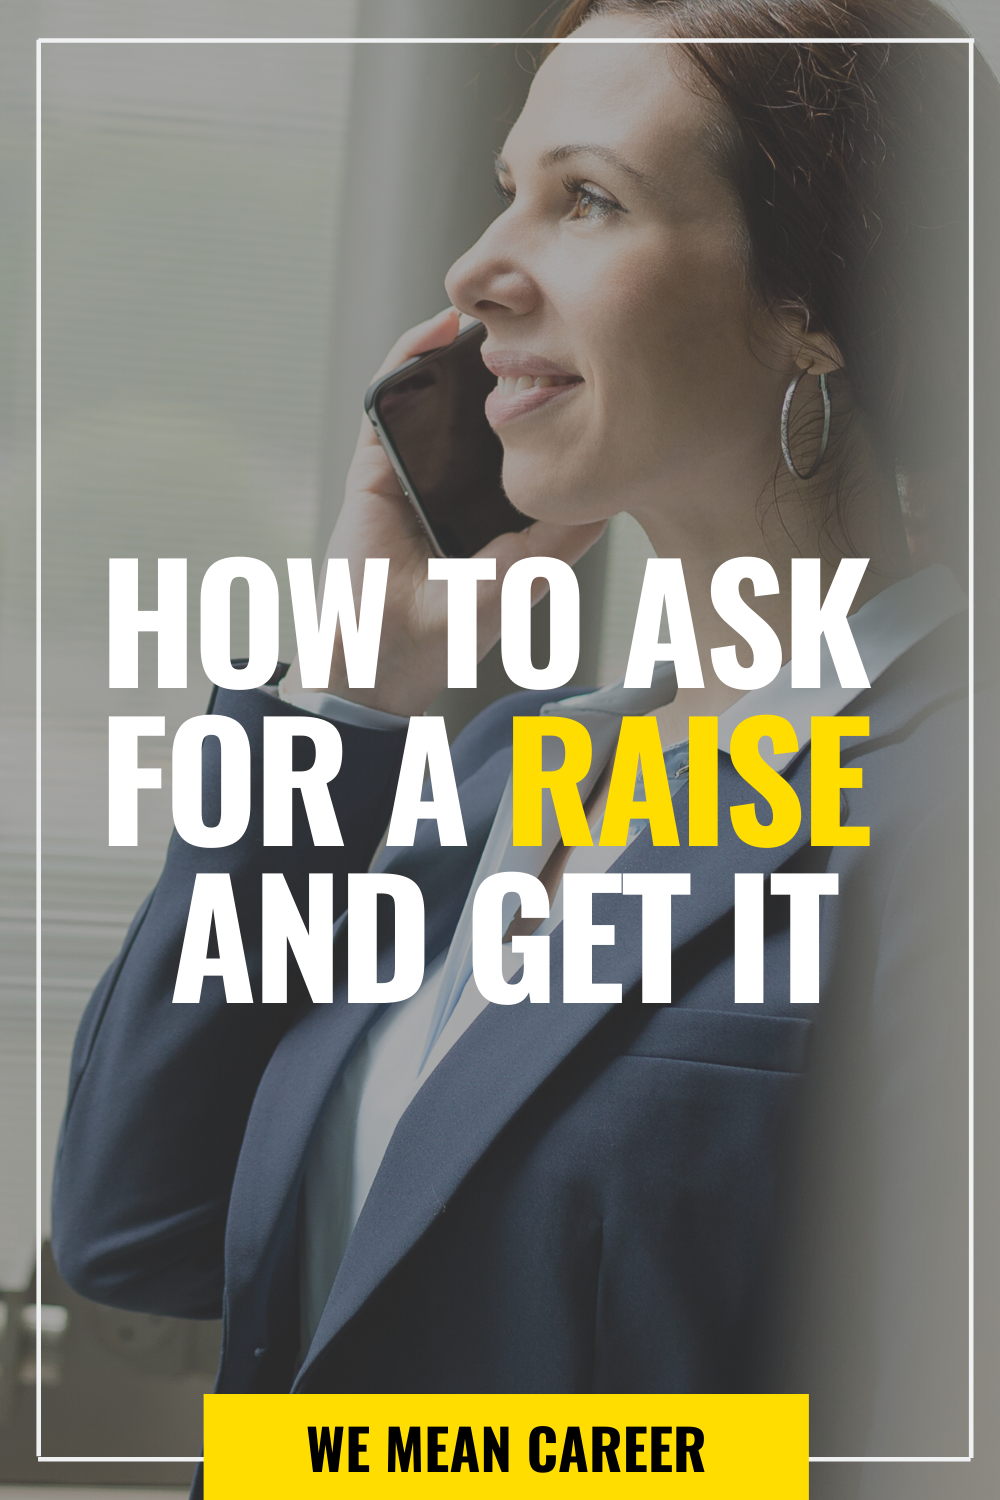 f178310c03c4c7d1b57b26af1a459c1b - How To Ask Your Boss If You Are Getting Fired